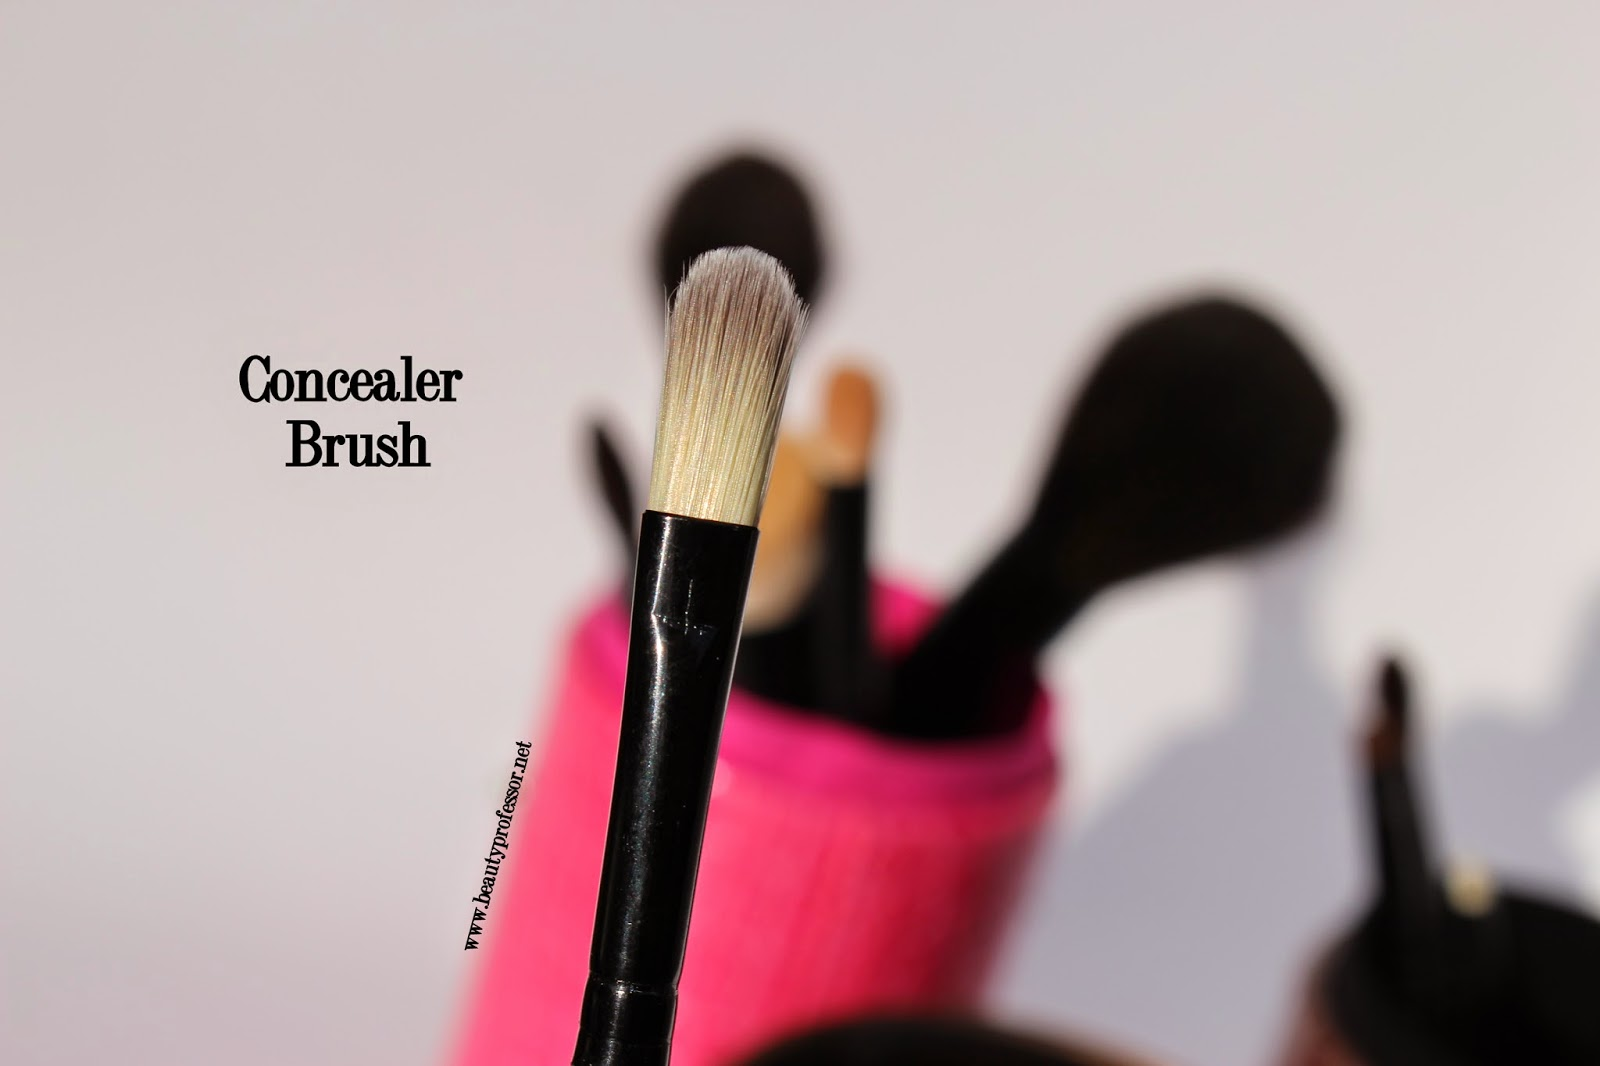 Eye Shader/Concealer Brush by youngblood #11